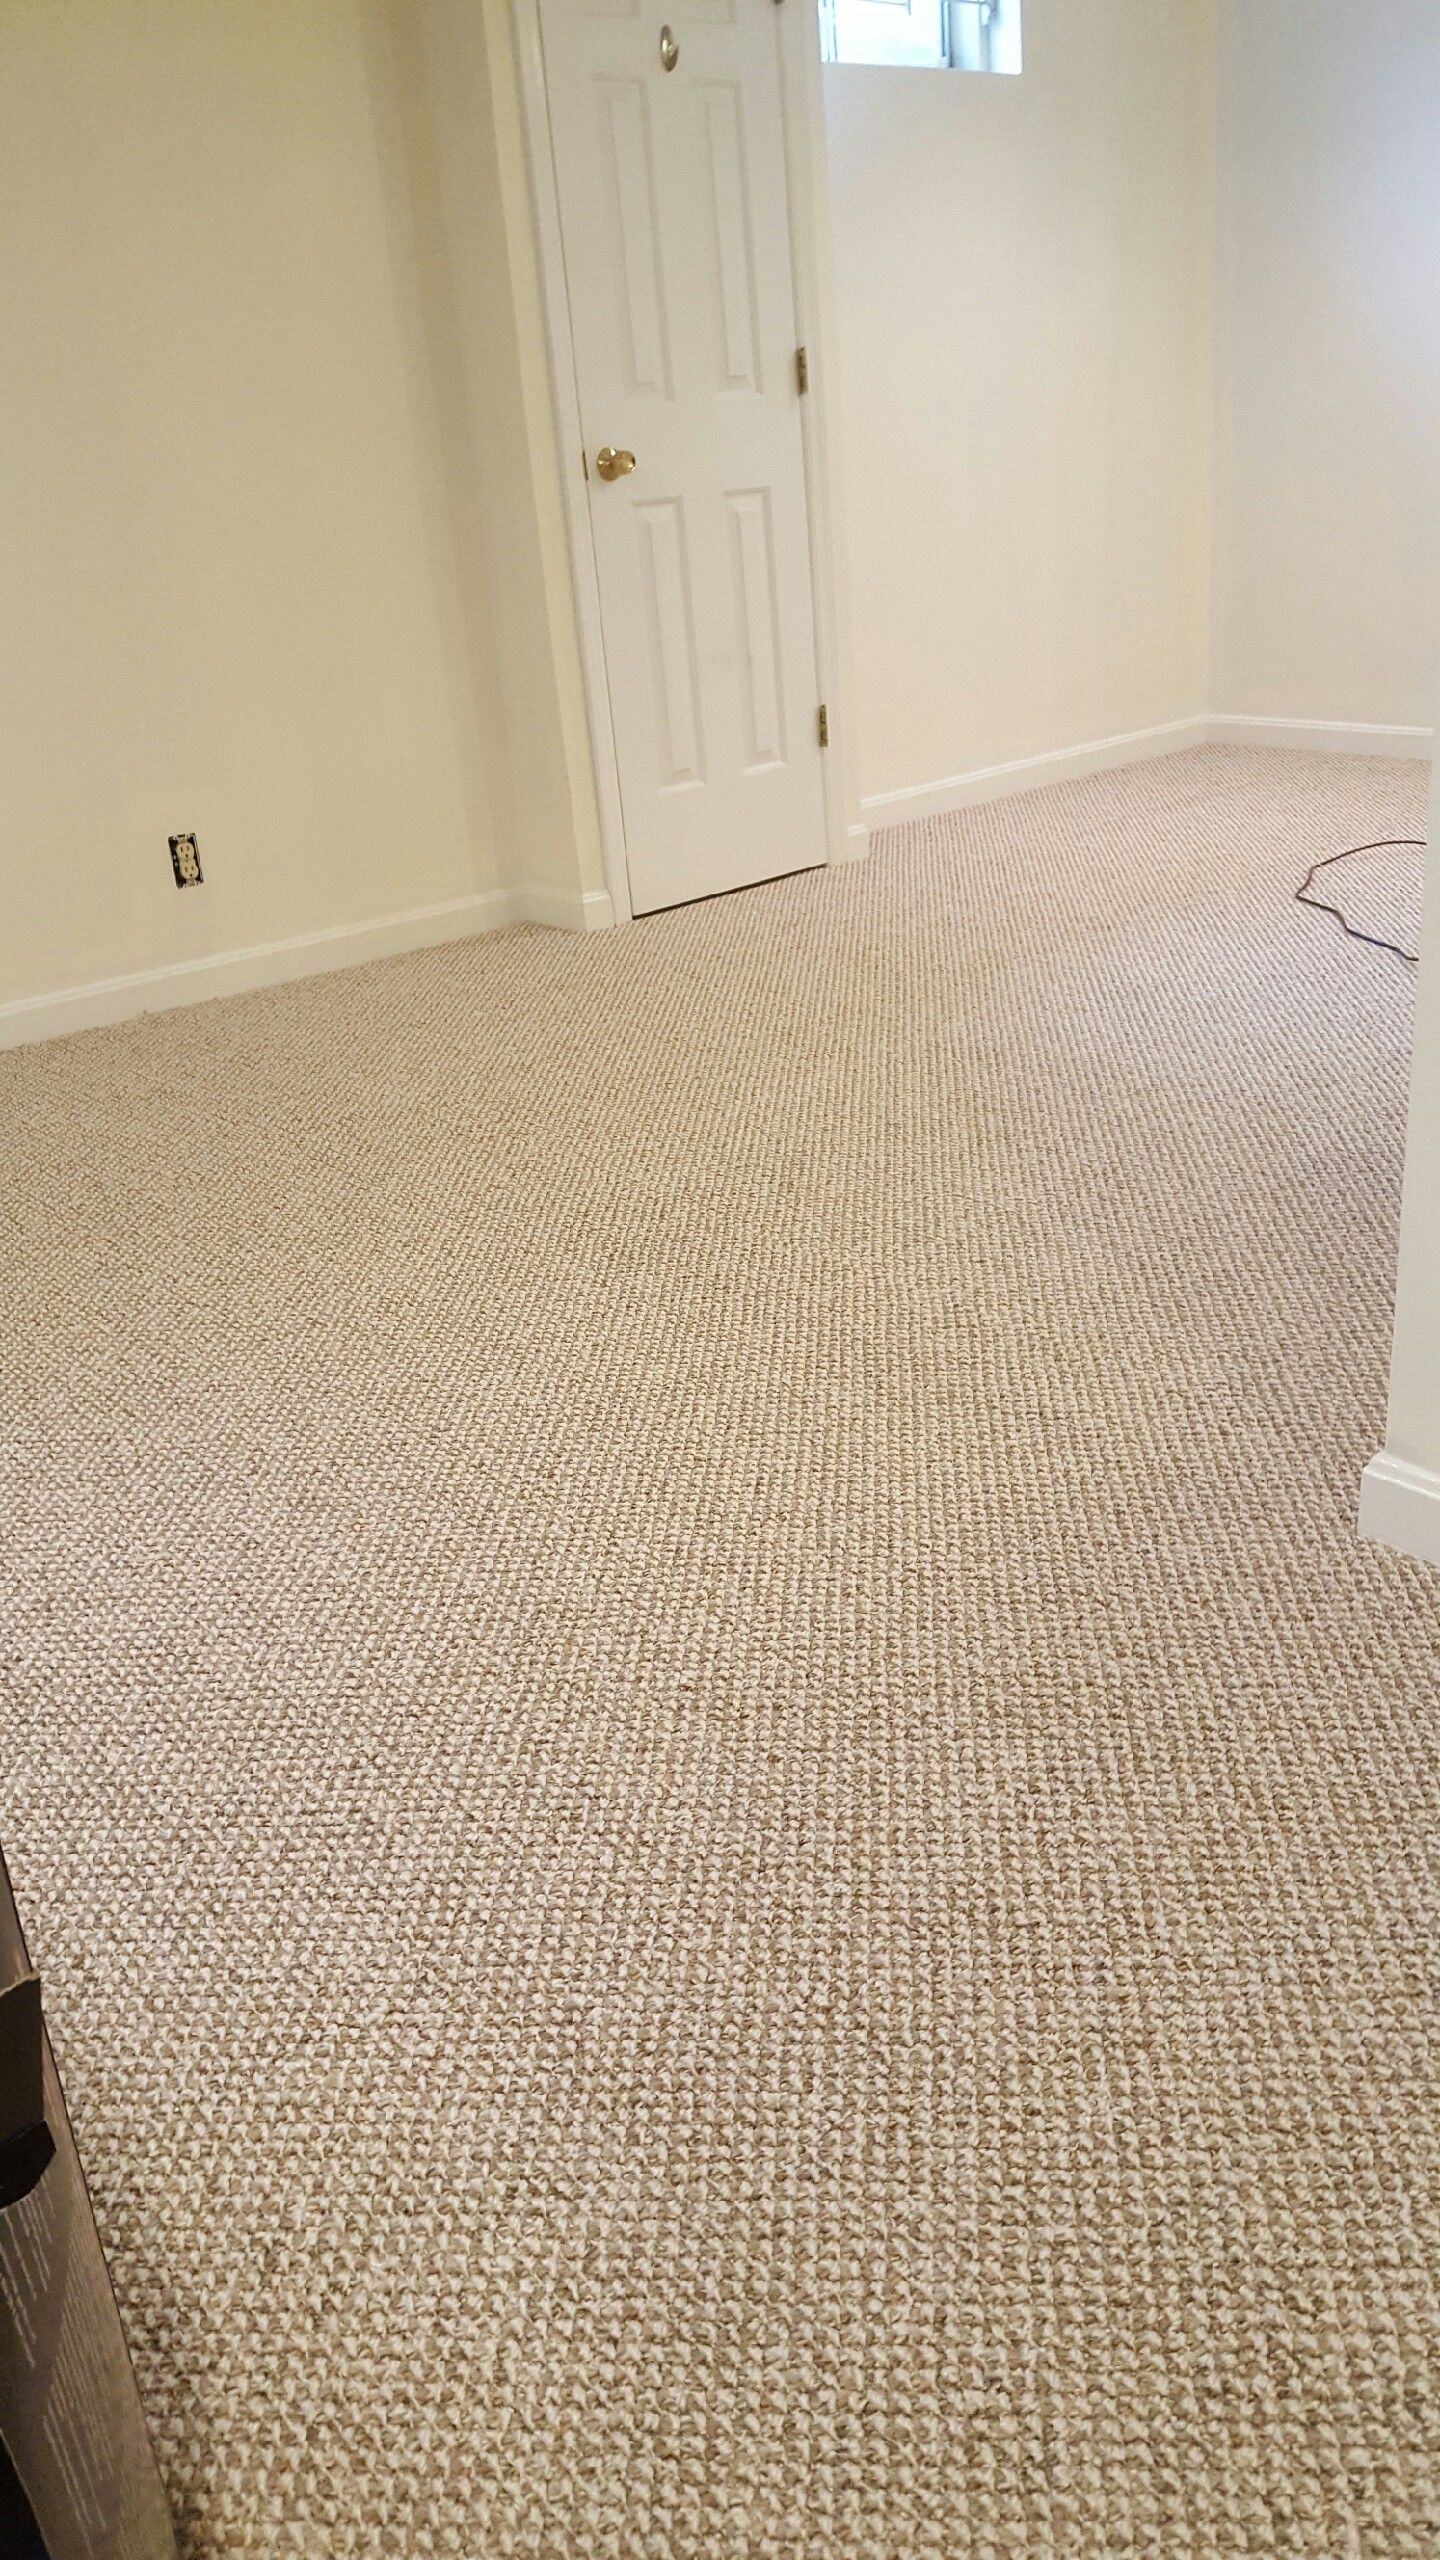 Bliss By Beaulieu Carpet Style Sherwood Park Sold And Installed And Installed In West Chester Ohio By Home Based Carpet Home Carpet Carpet Flooring Flooring